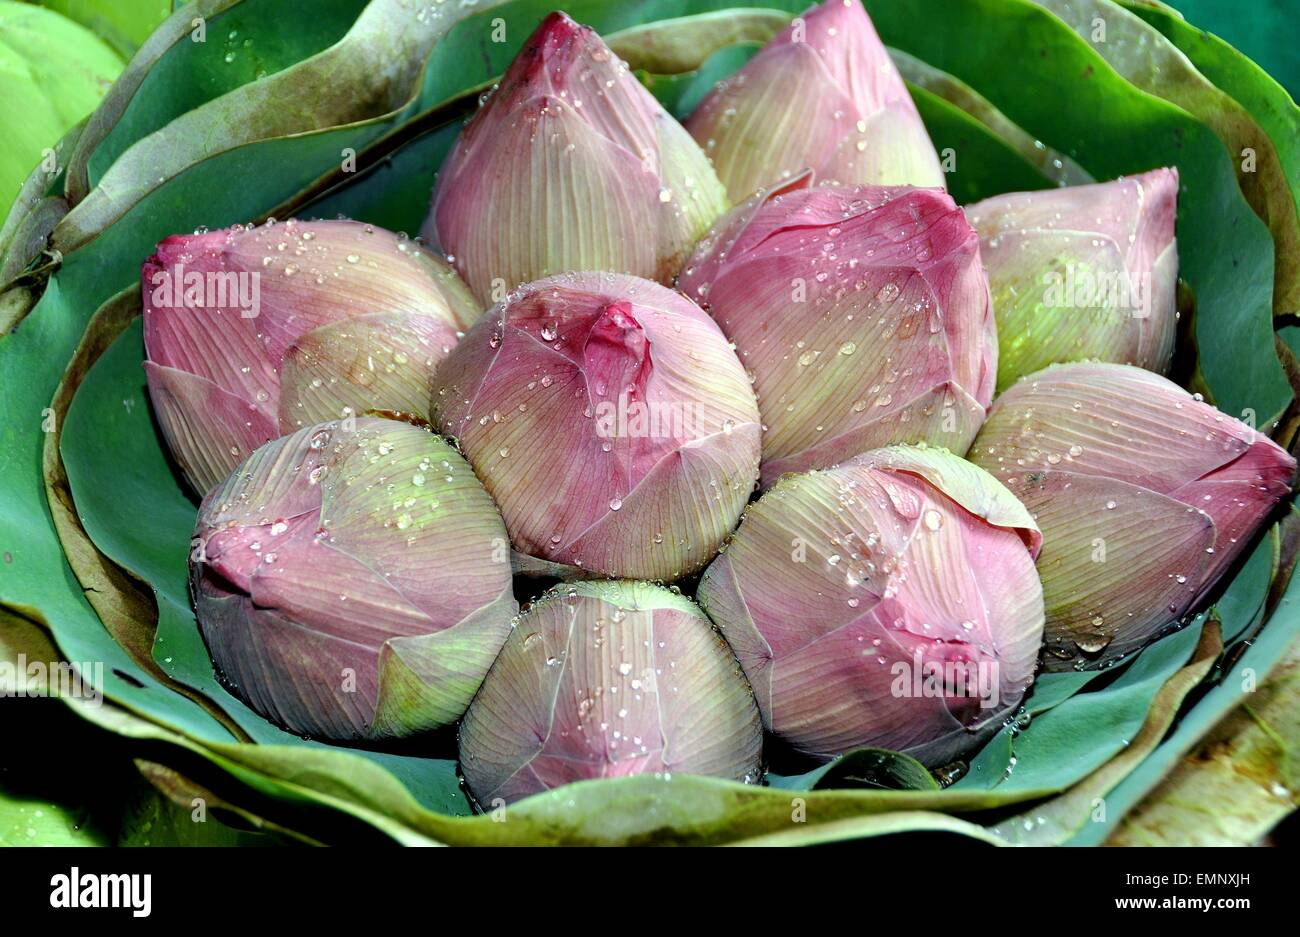 Bangkok Thailand A Bunch Of Pink Lotus Flower Buds Sprinkled With